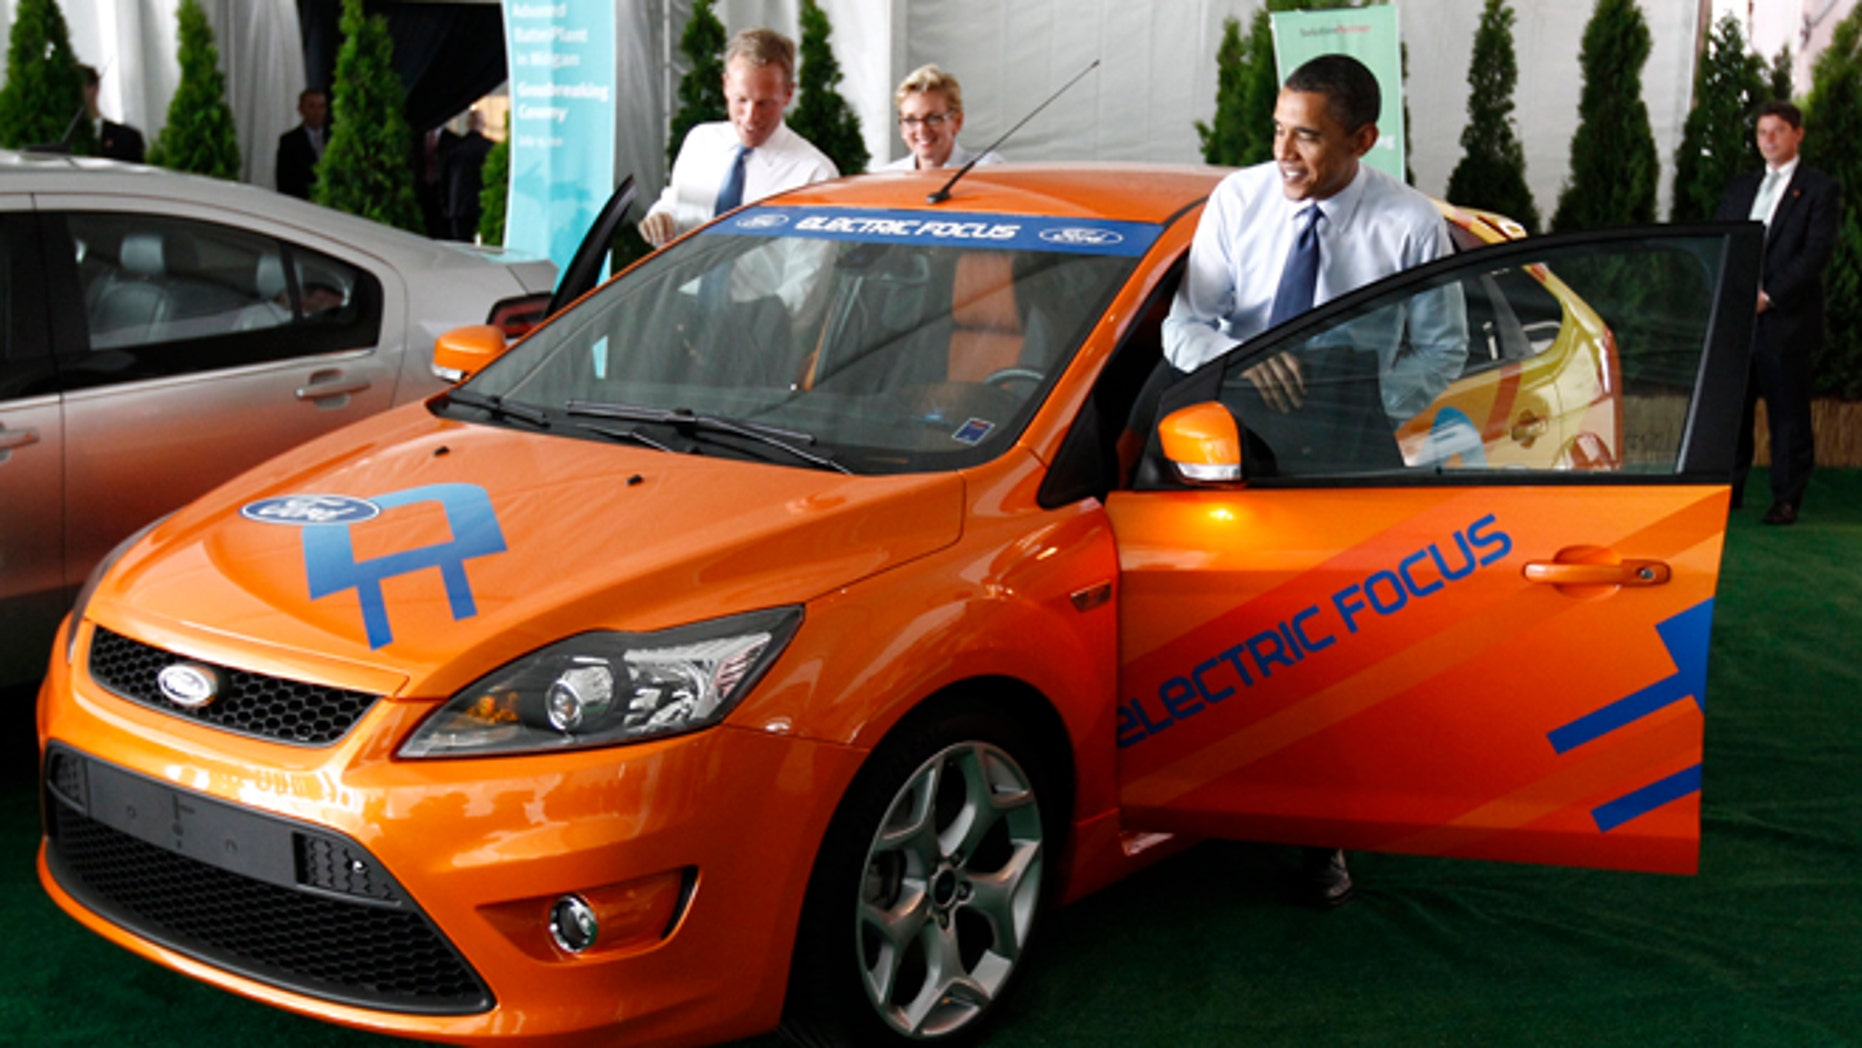 July 15 2010 President Gets Into An Electric Ford Focus As He Attends